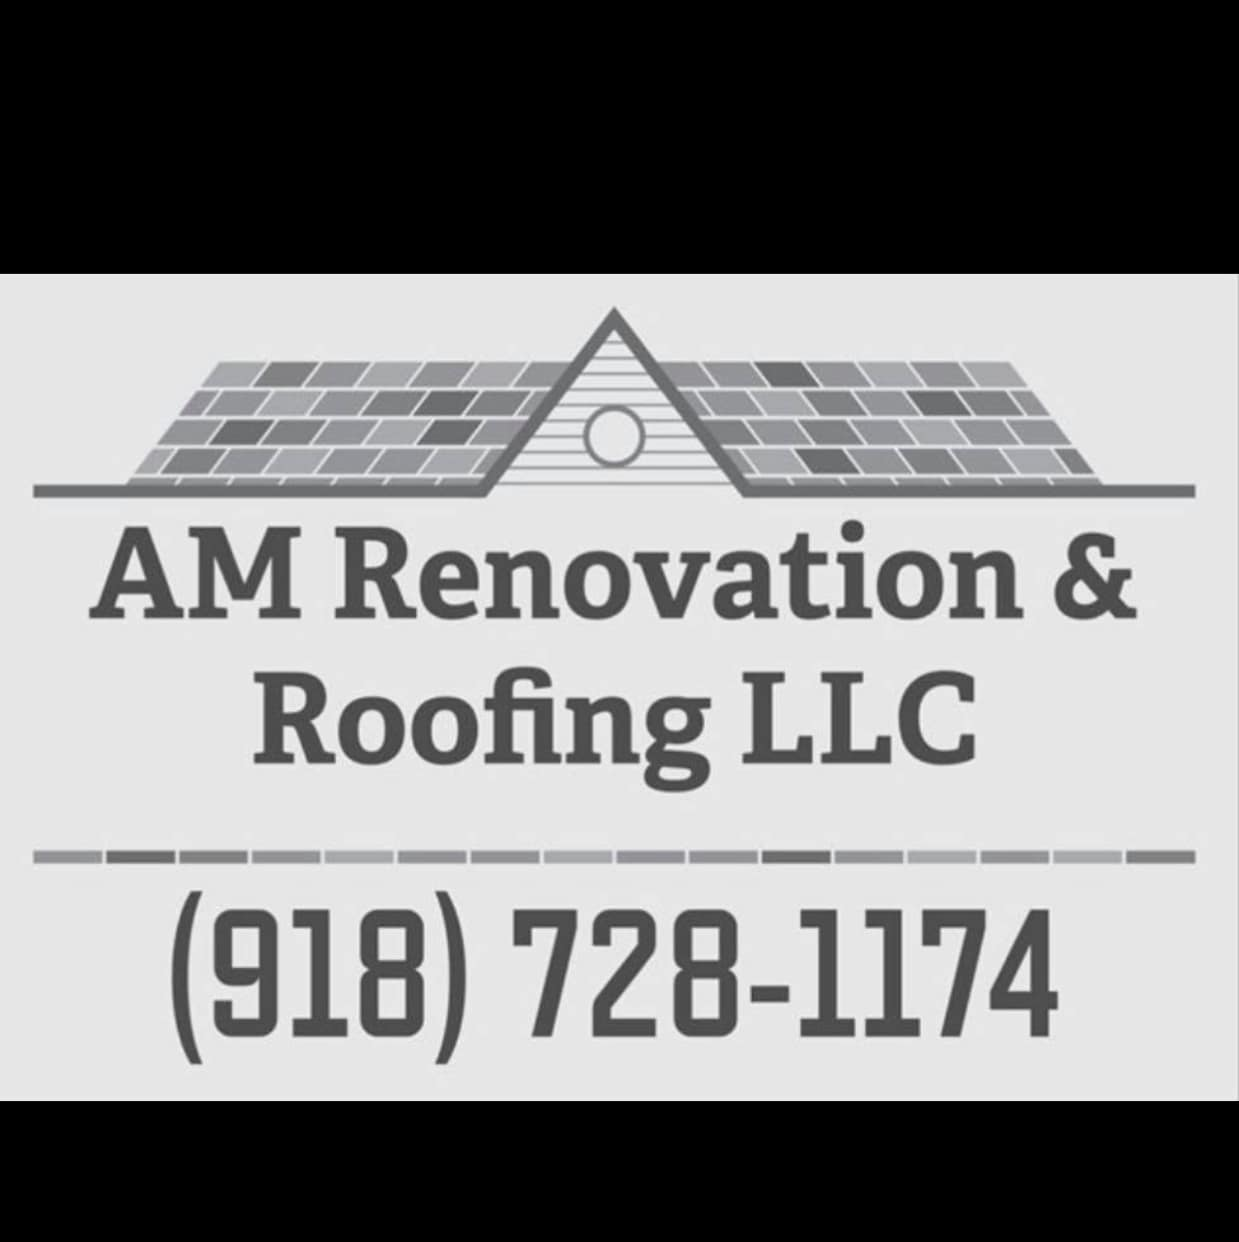 AM Renovation & Roofing